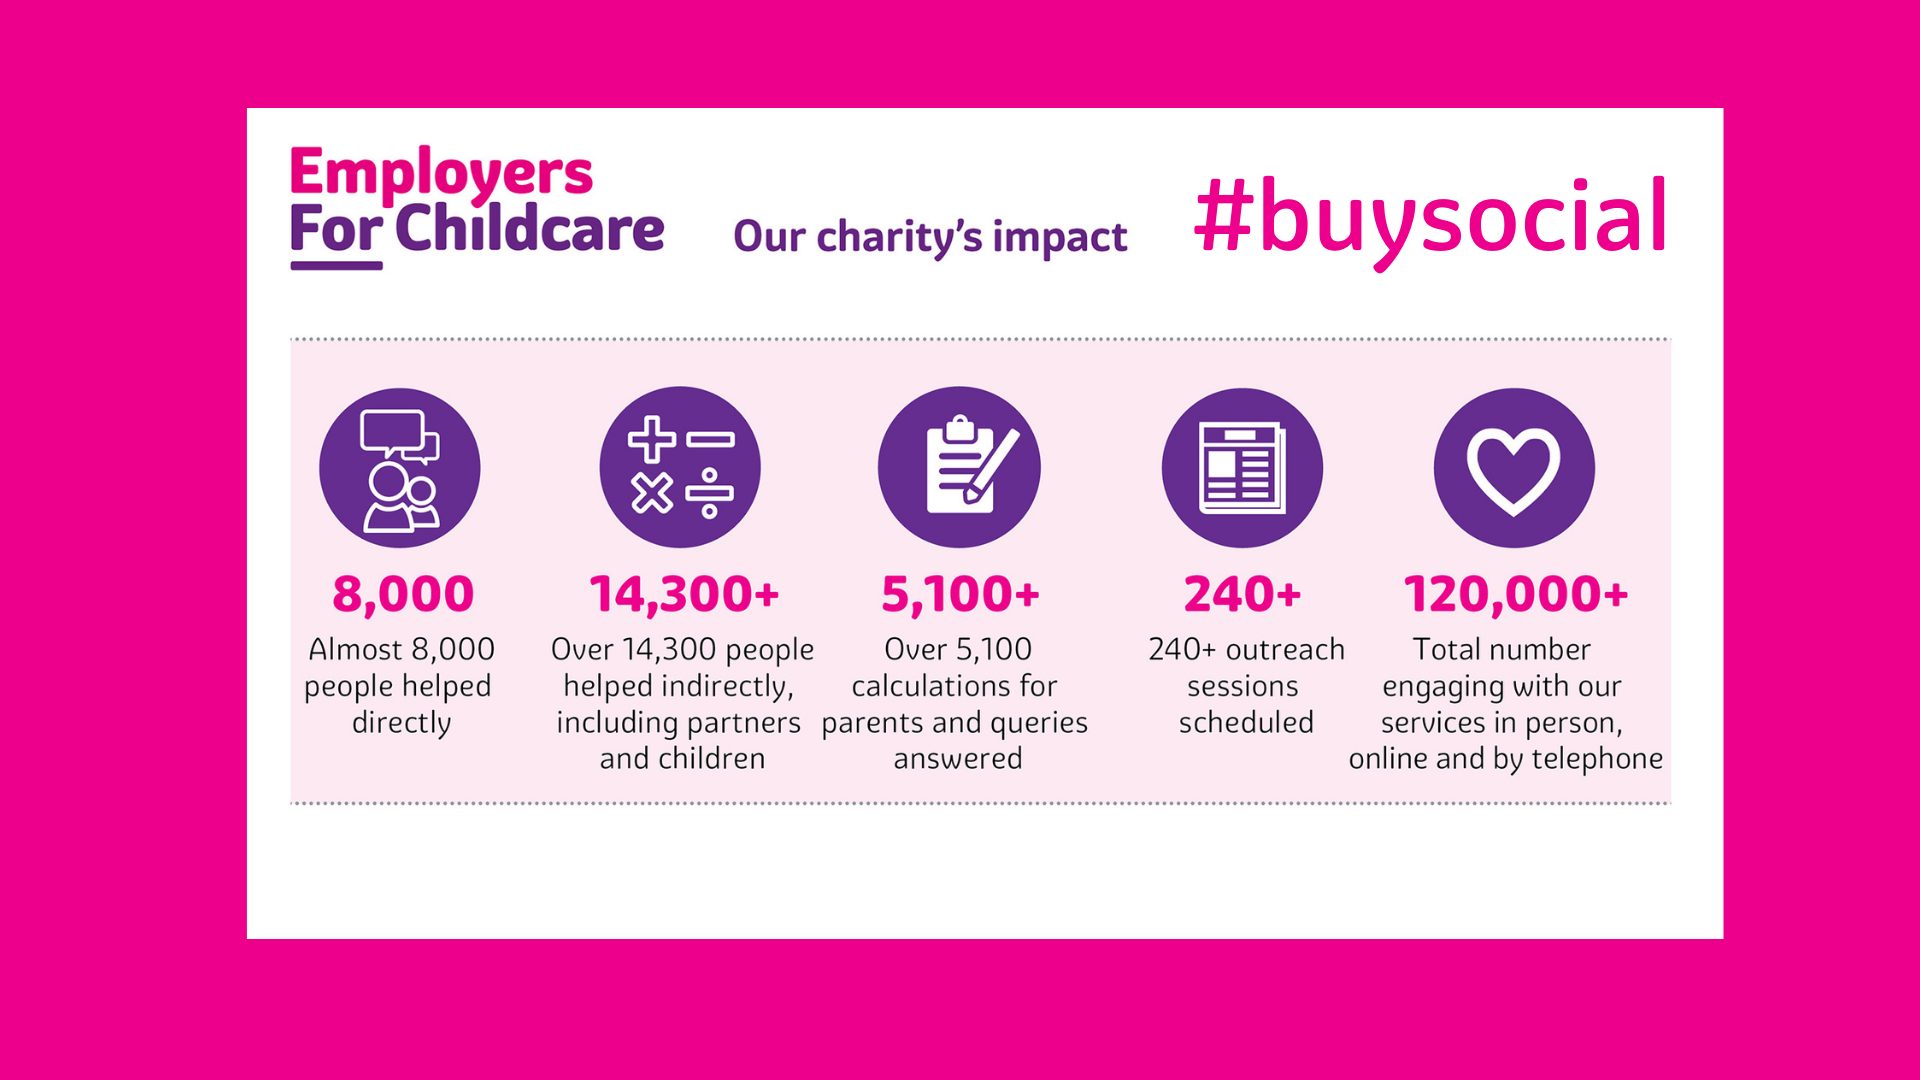 Choose Employers For Childcare and make a real difference for families